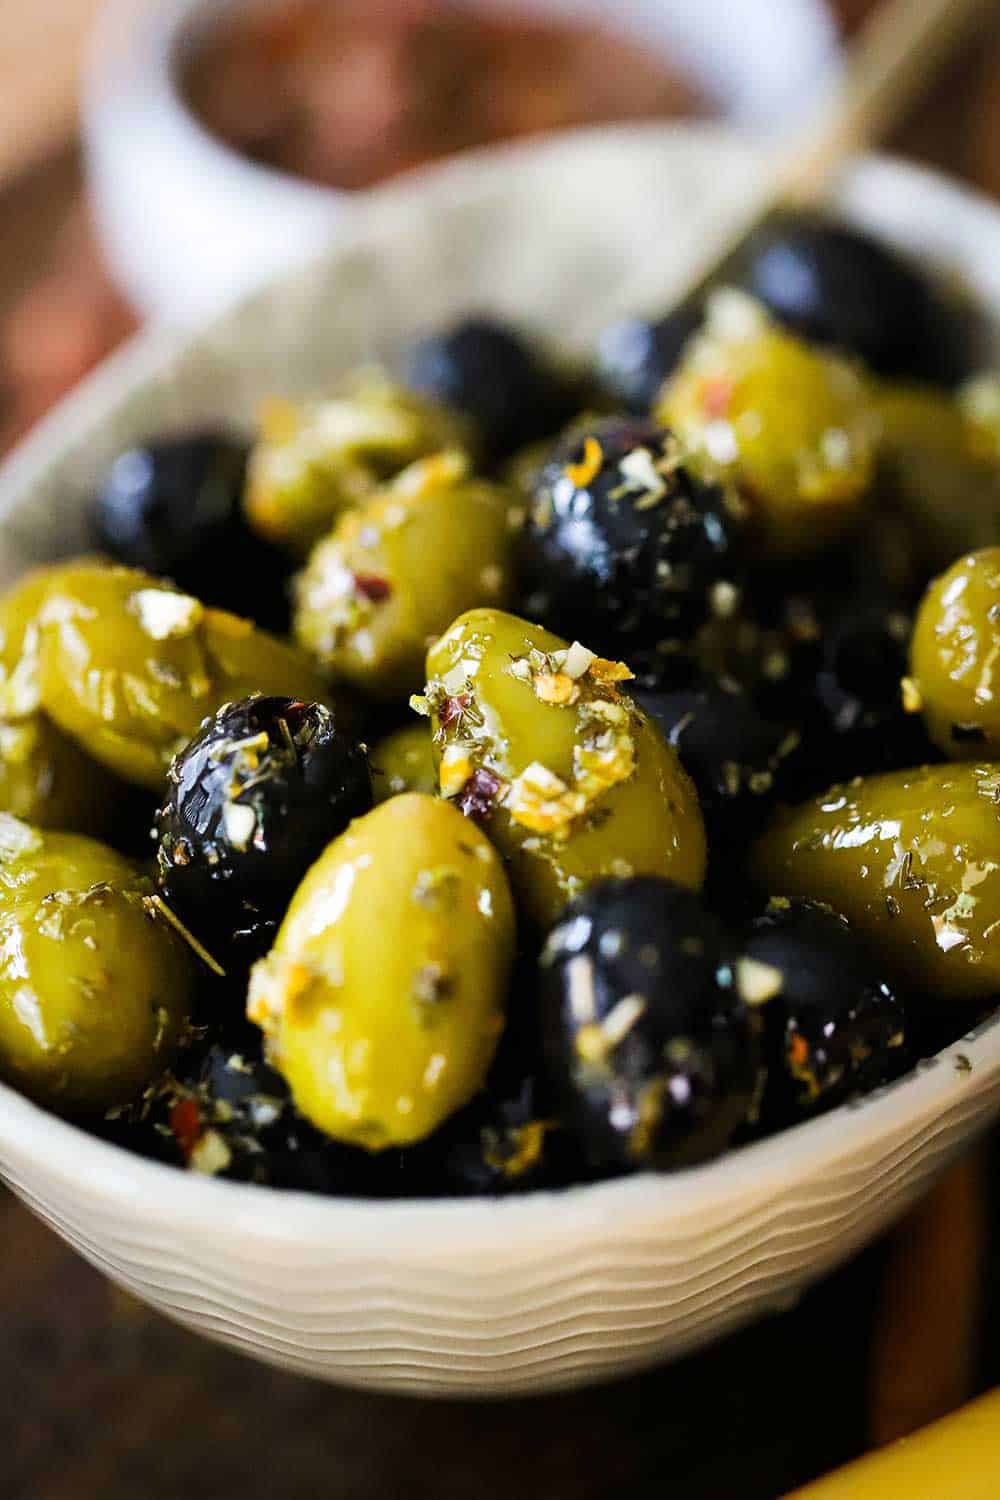 A small white oval bowl filled with green and black marinated olives.